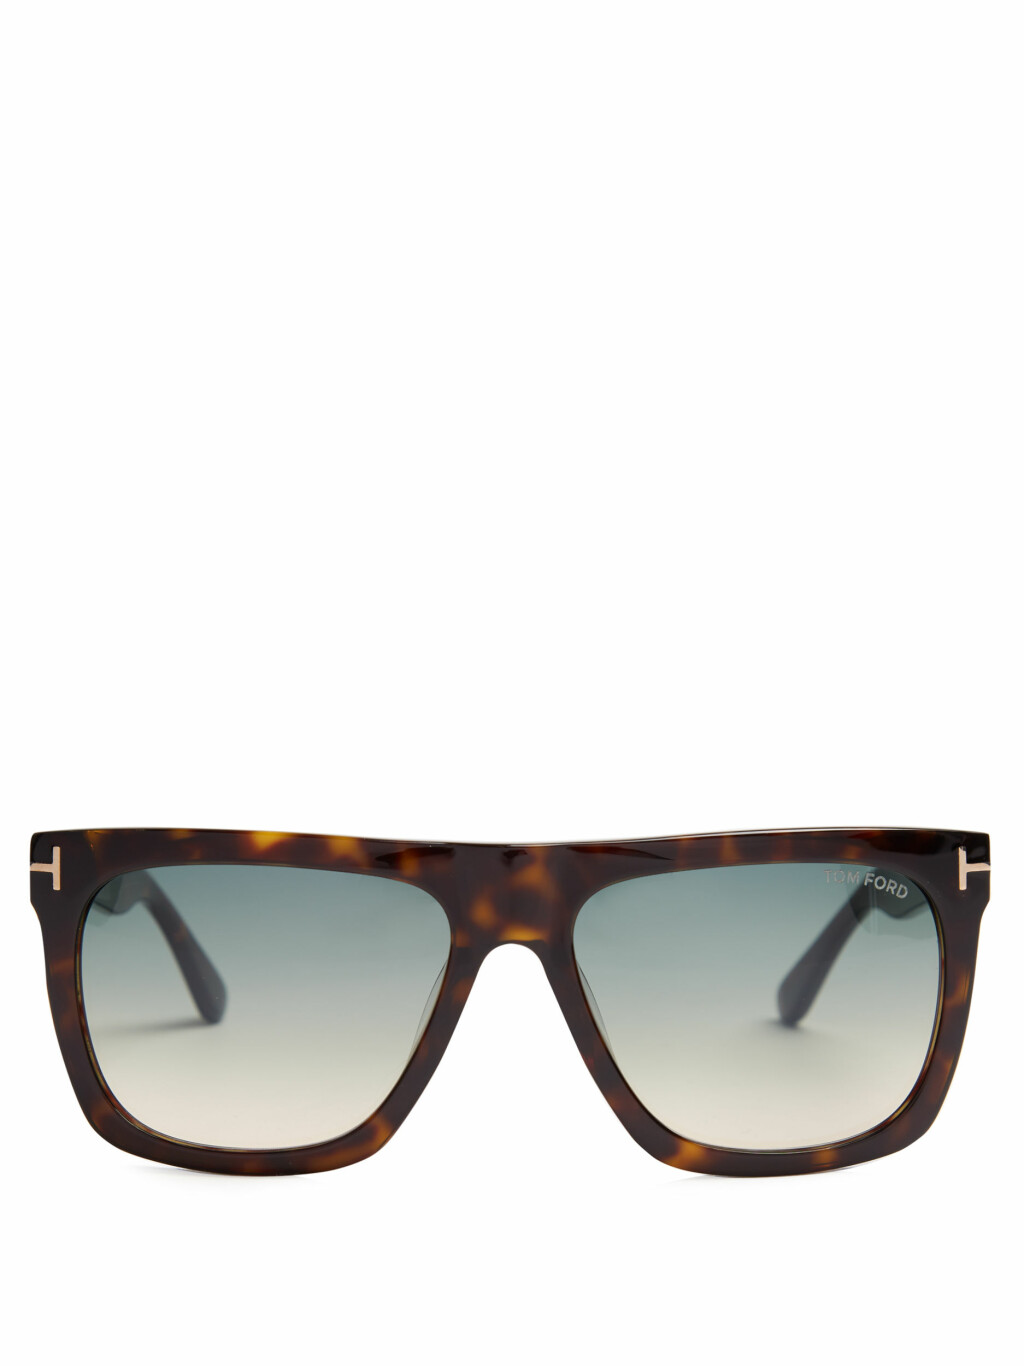 Solbriller fra Tom Ford via Matchesfashion.com | kr 2085